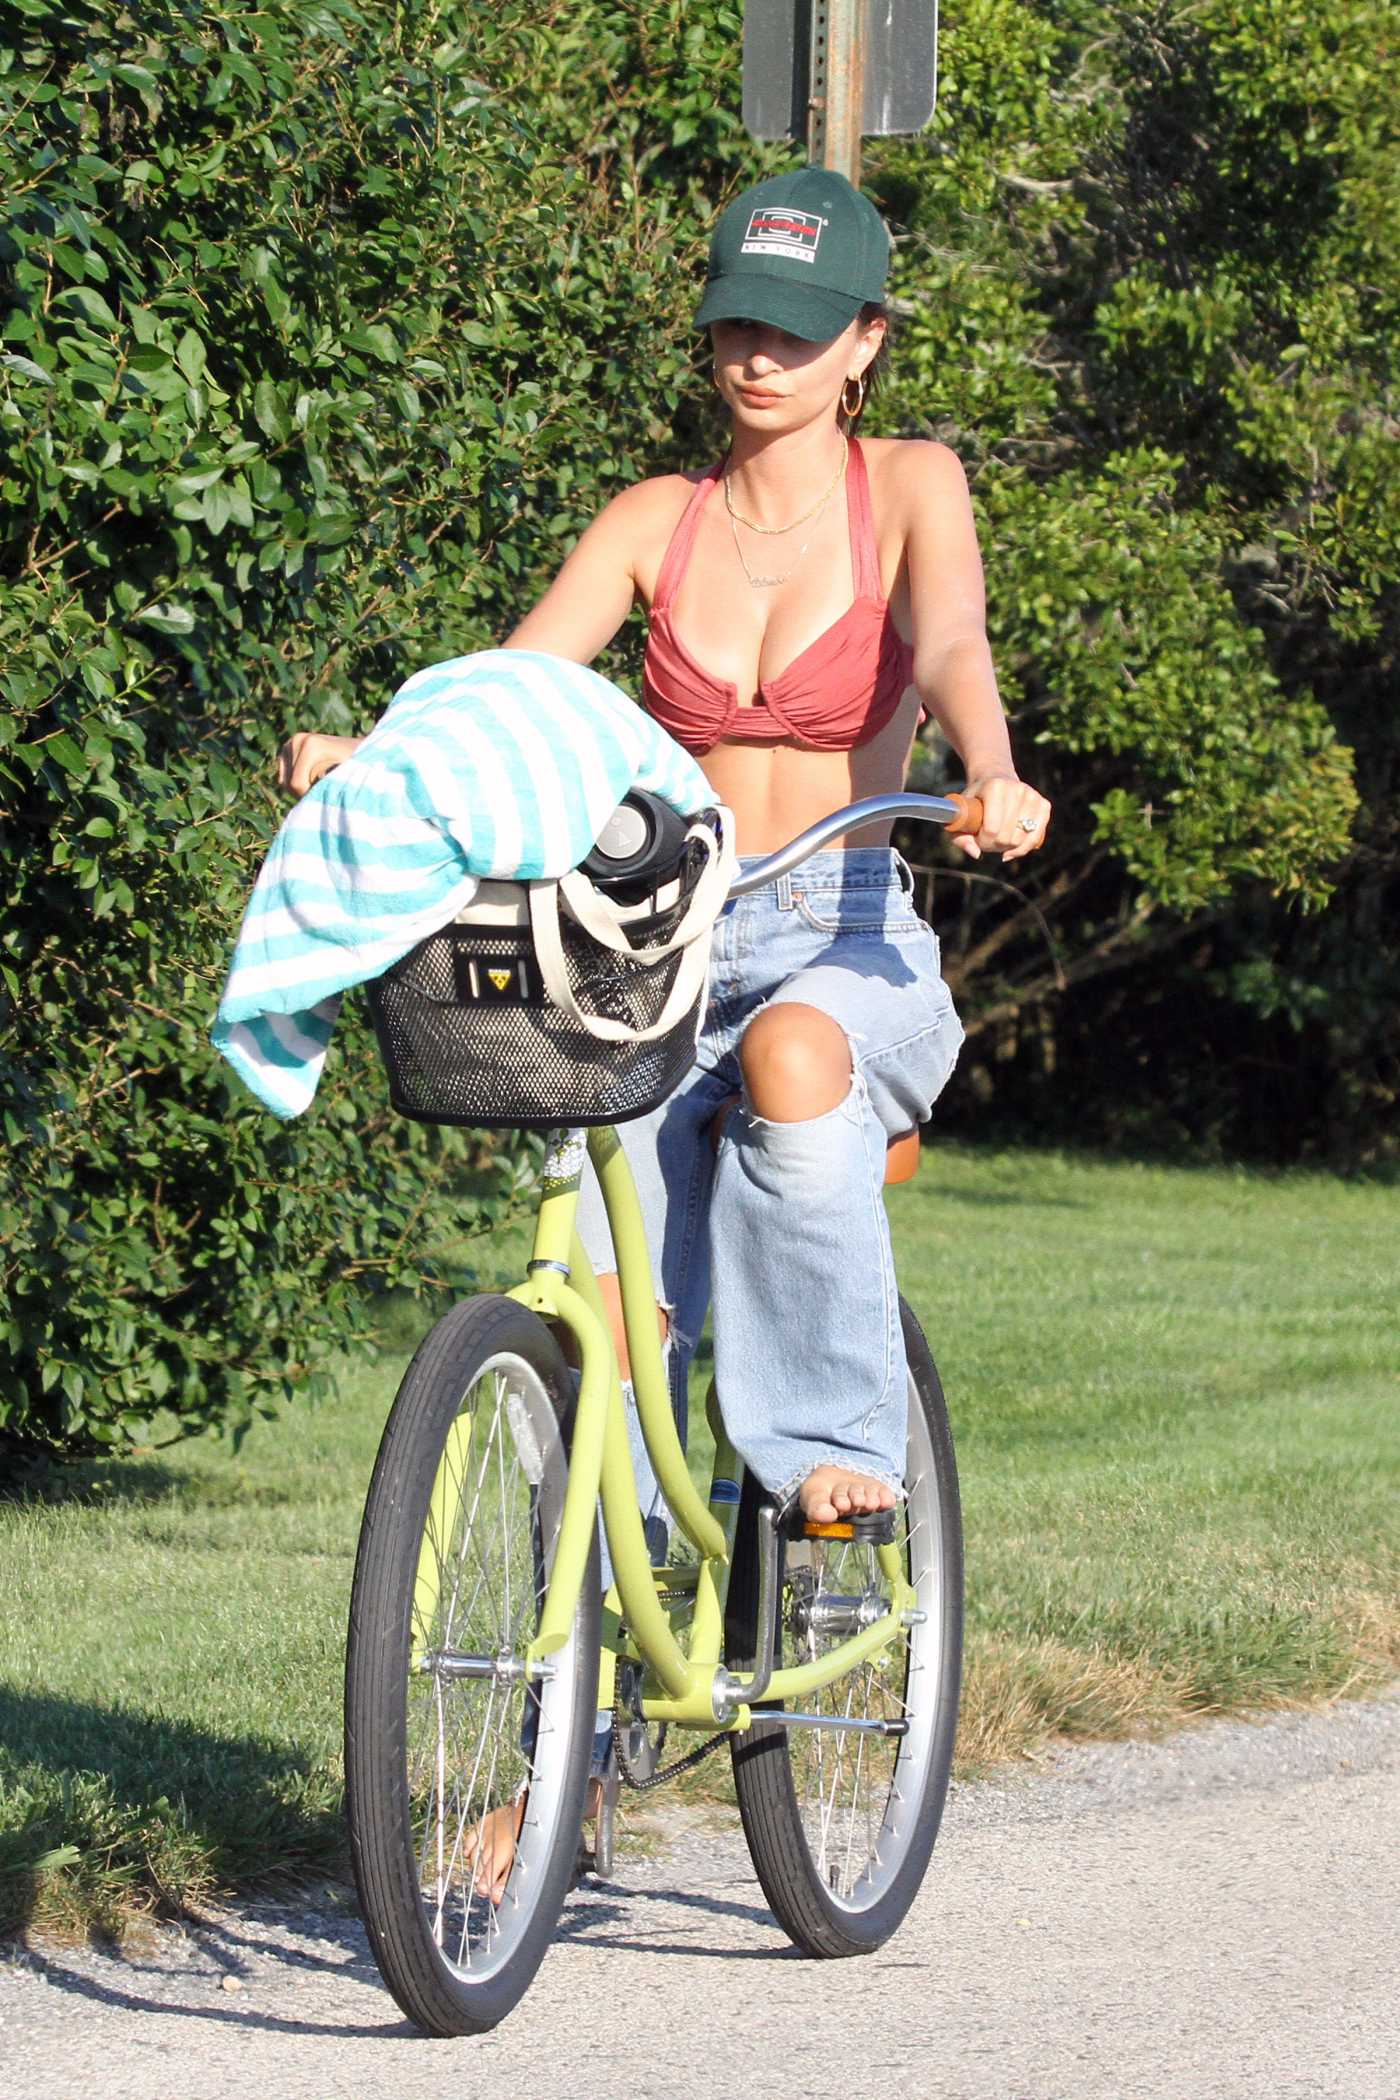 Emily Ratajkowski in a Red Bikini Top Does a Bike Ride in the Hamptons, New York 08/05/2020